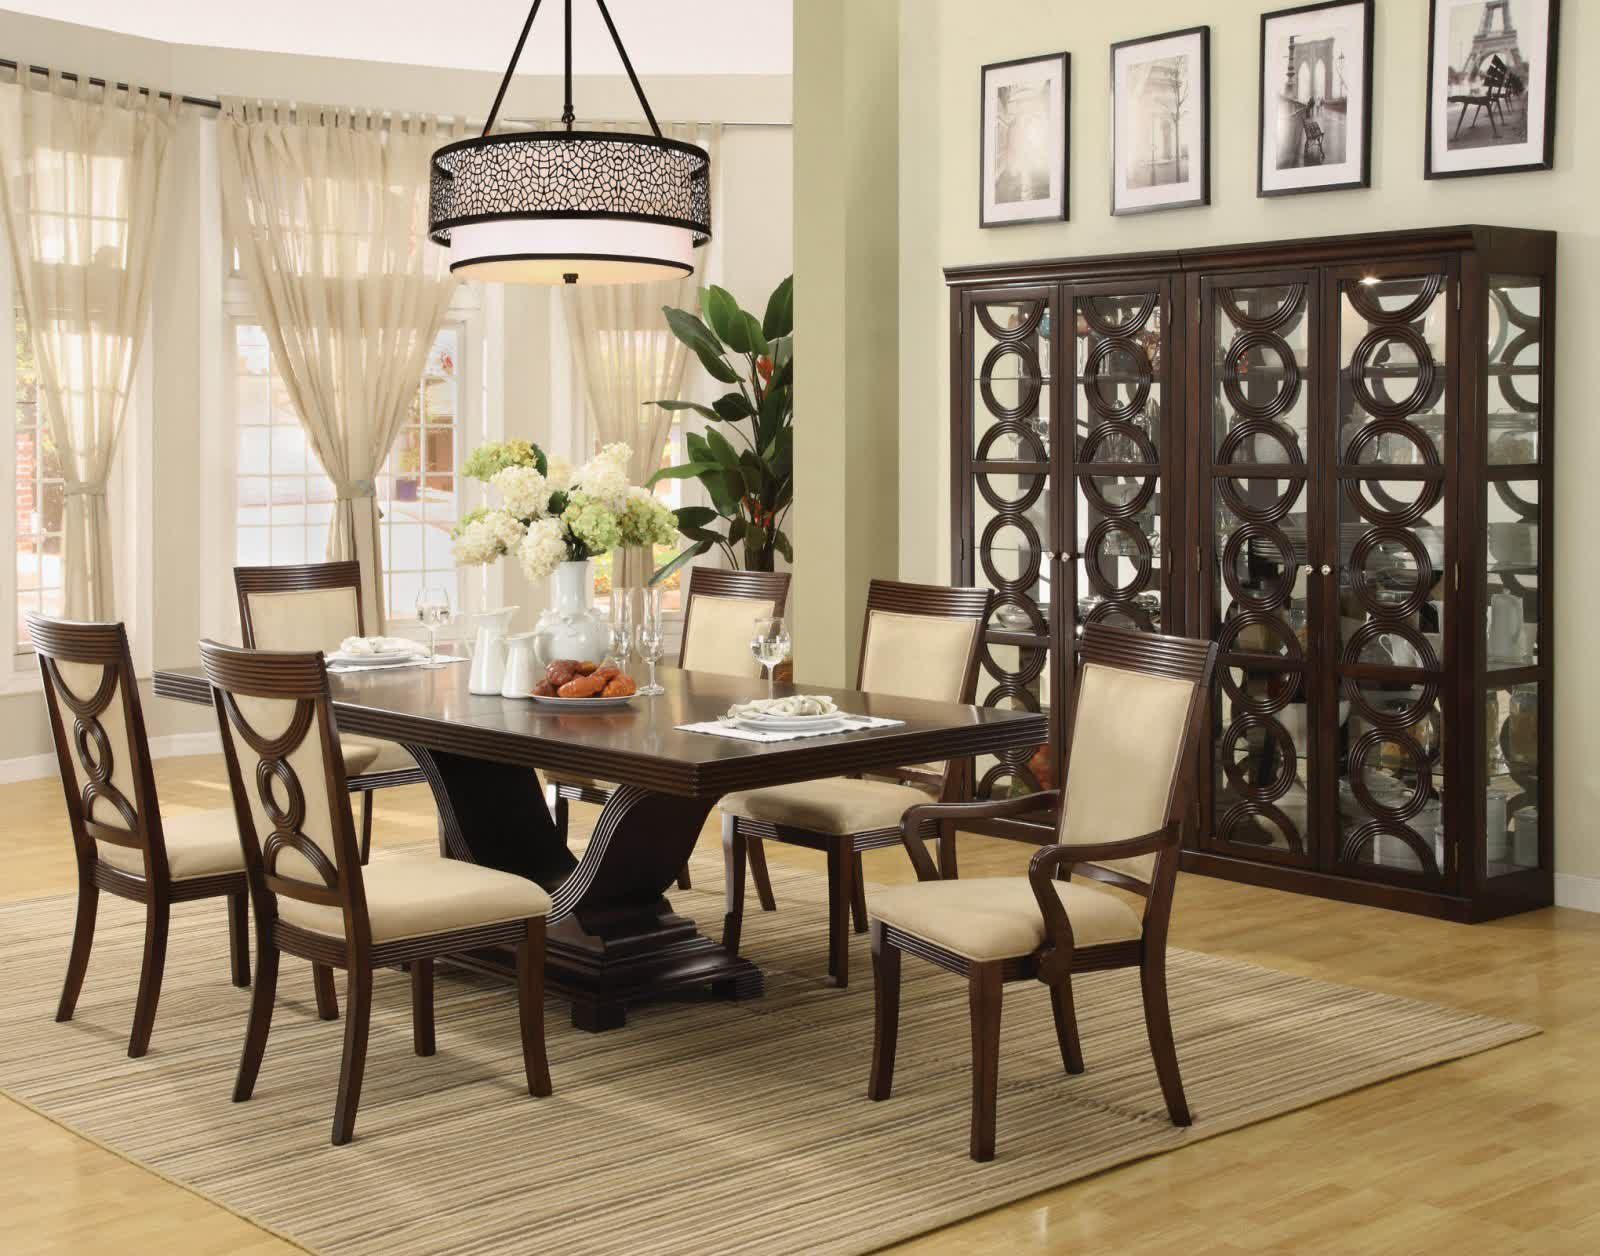 Superbe Appealing Dining Table Centerpieces Used In Open Dining Room With Wooden  Chairss And Grey Carpet